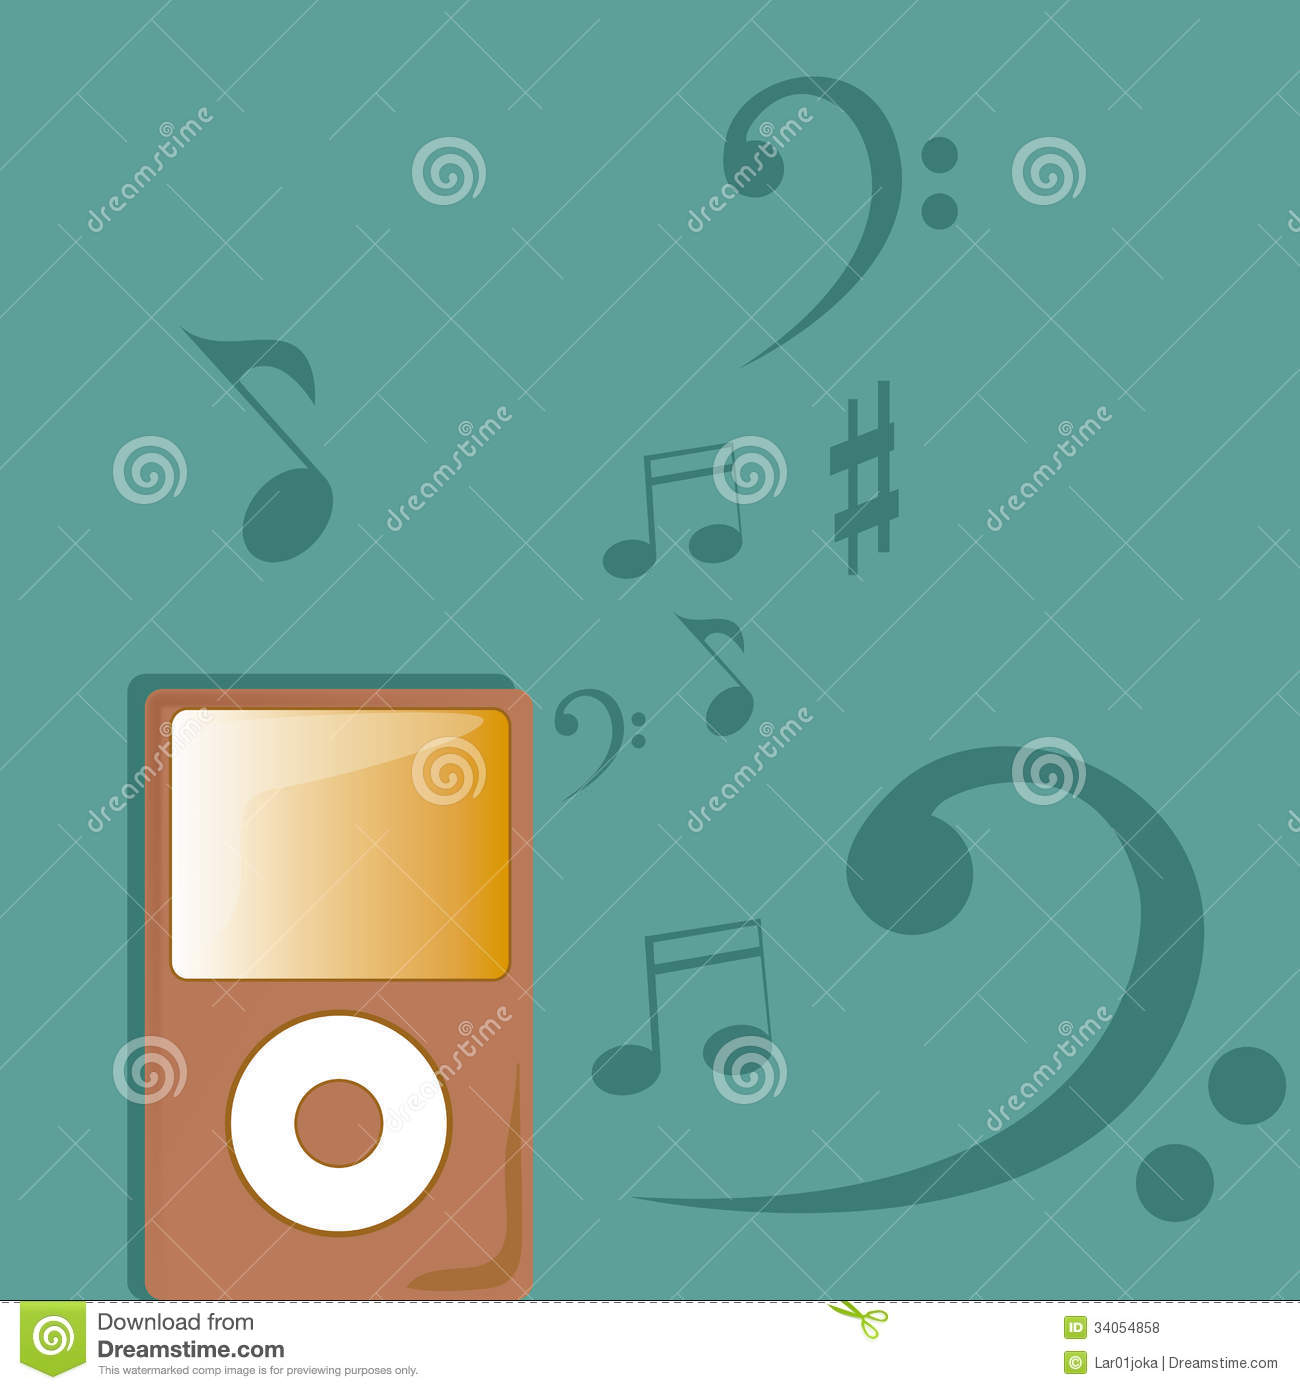 Music Player Royalty Free Stock Photos - Image: 34054858